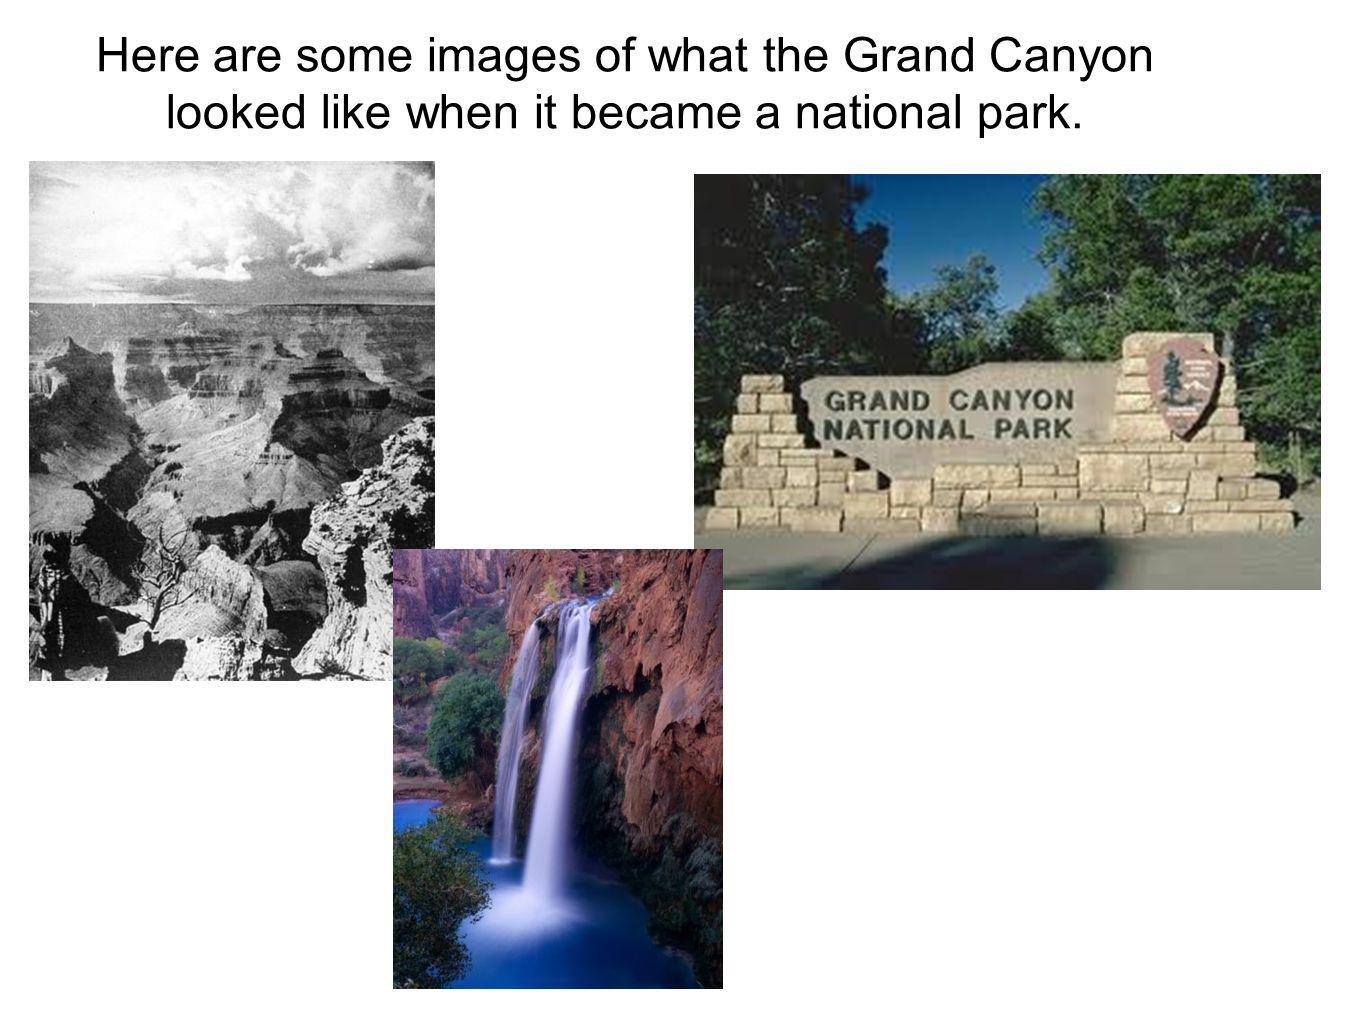 Here are some images of what the Grand Canyon looked like when it became a national park.